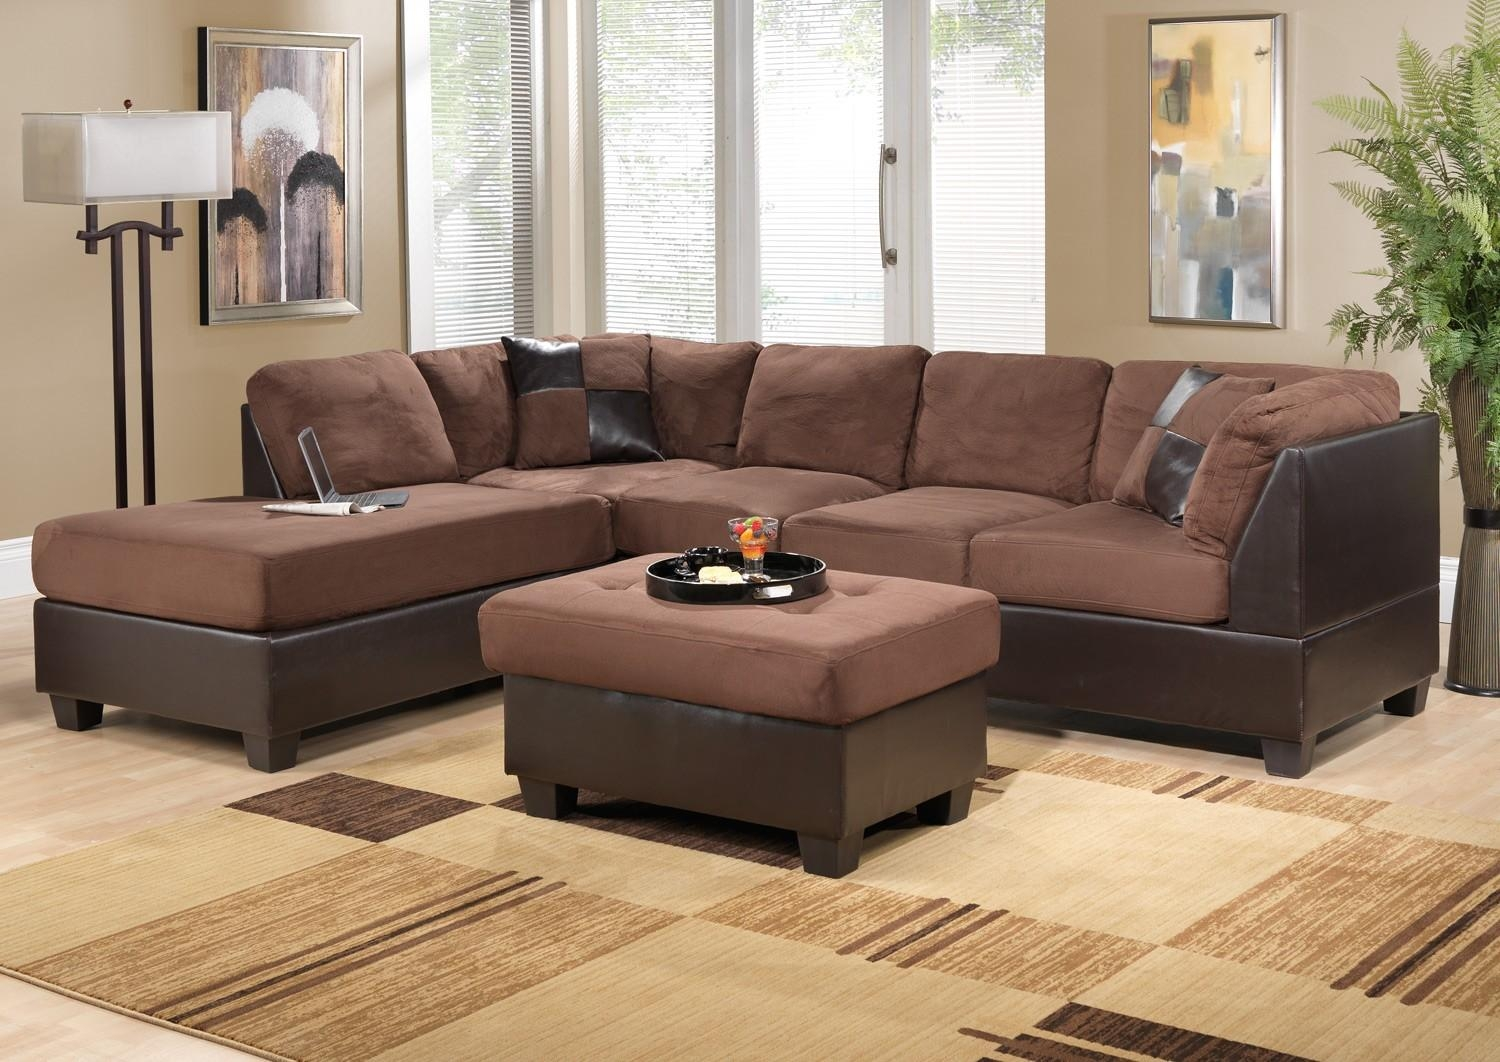 Furniture: Beauty Sofa In Living Room Living Room Furniture Within Living Room Sofas (View 11 of 20)